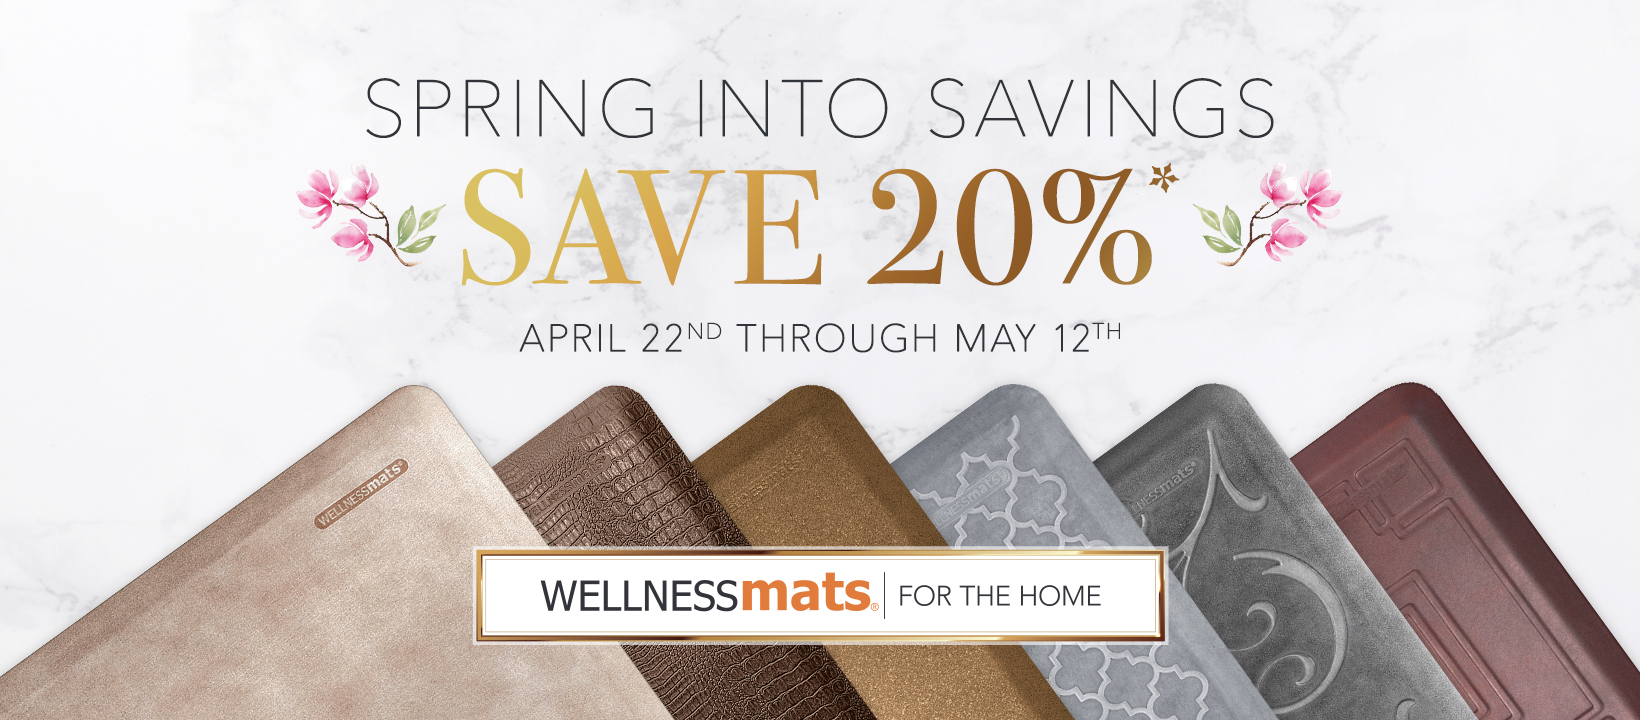 Spring Into Savings Facebook Cover - Mat Lineup.jpg